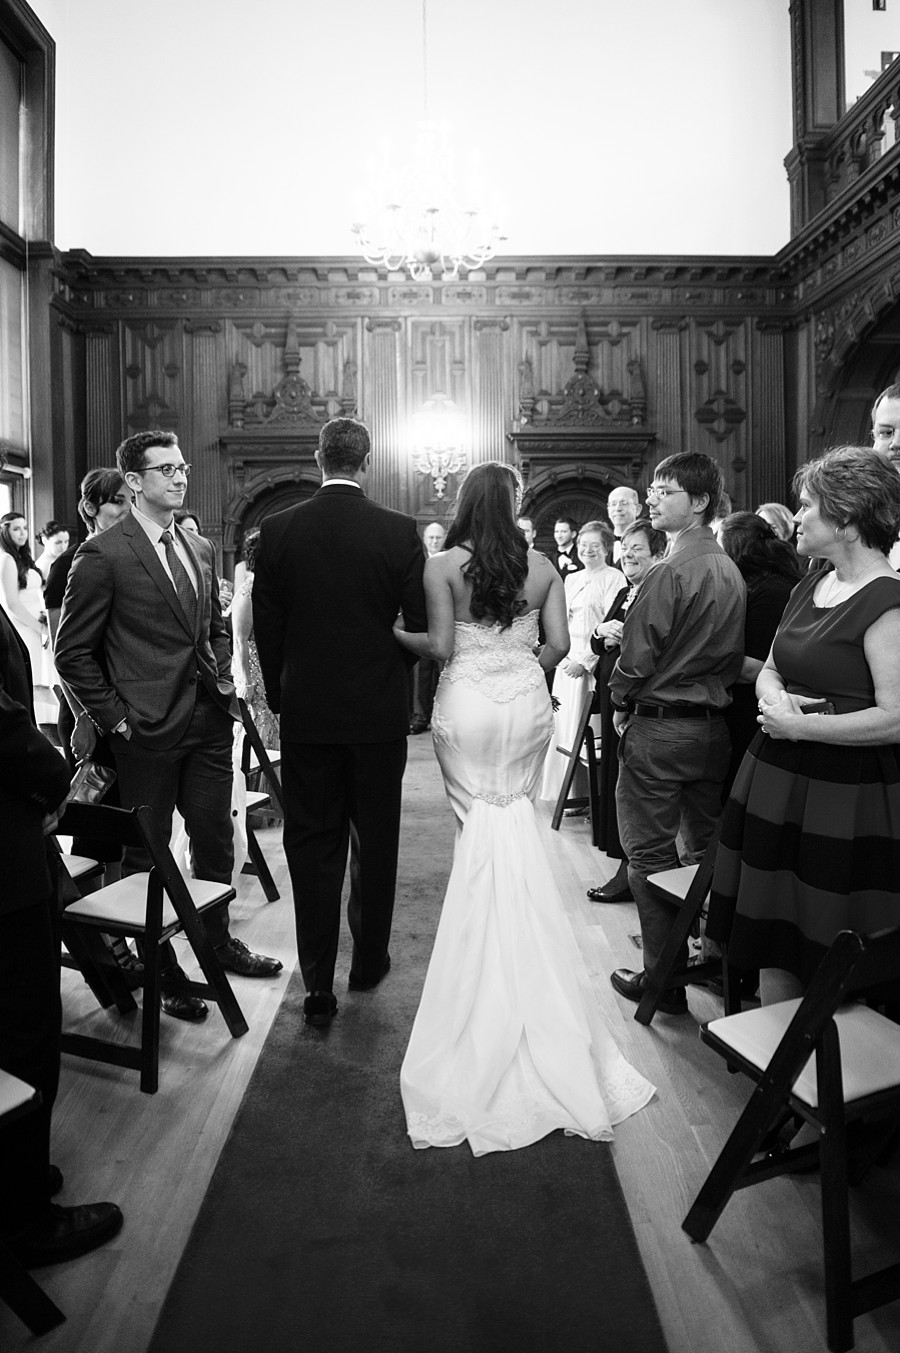 Branford_House_Wedding_FE_29.jpg